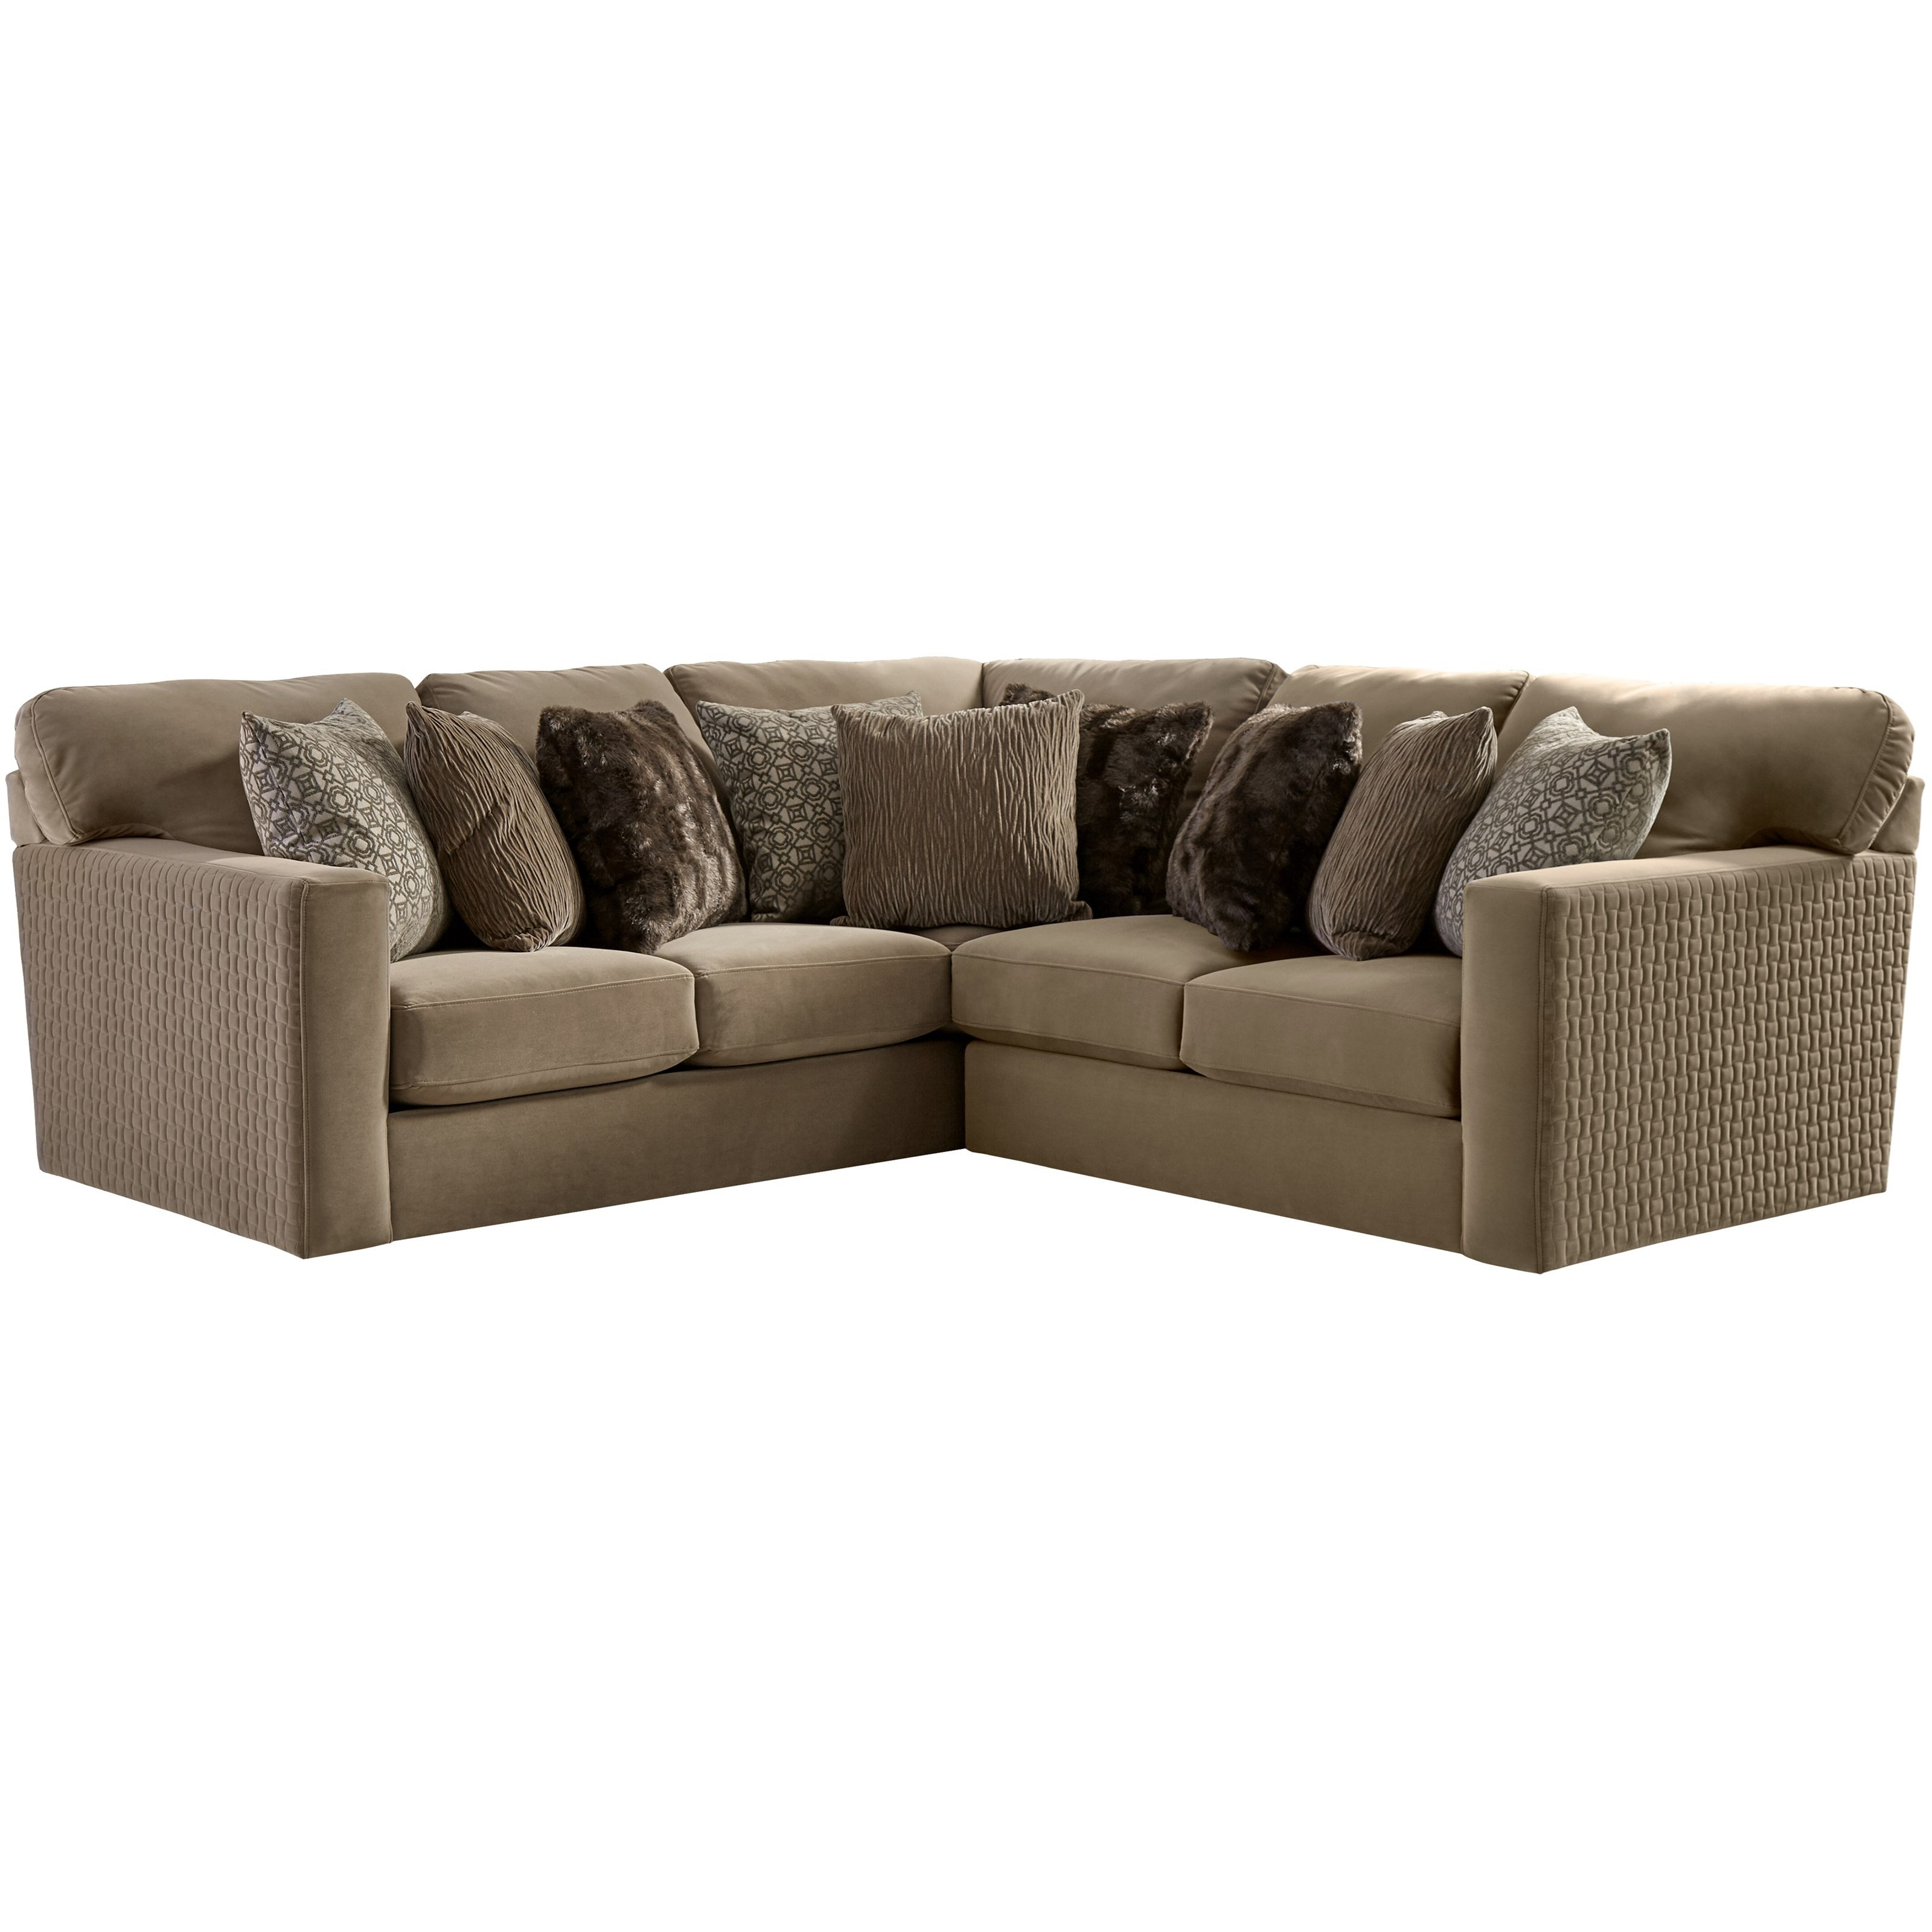 Carlsbad Sectional by Jackson Furniture at Northeast Factory Direct